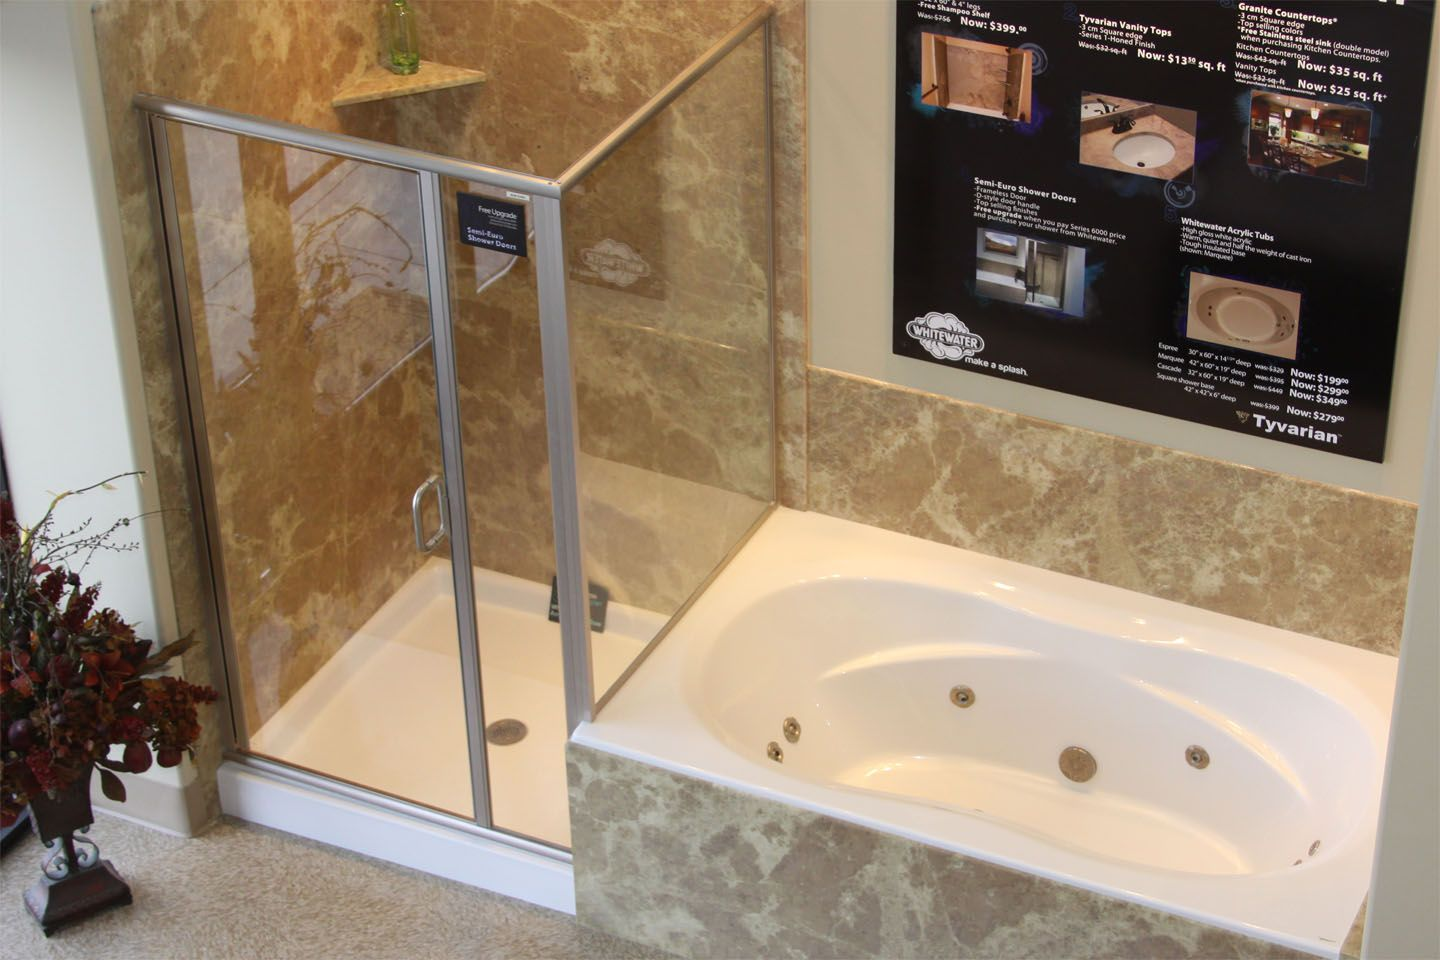 Garden tub and shower combo shower bases 0005 cropped tub shower combo layton showroom - Bathtub small space concept ...